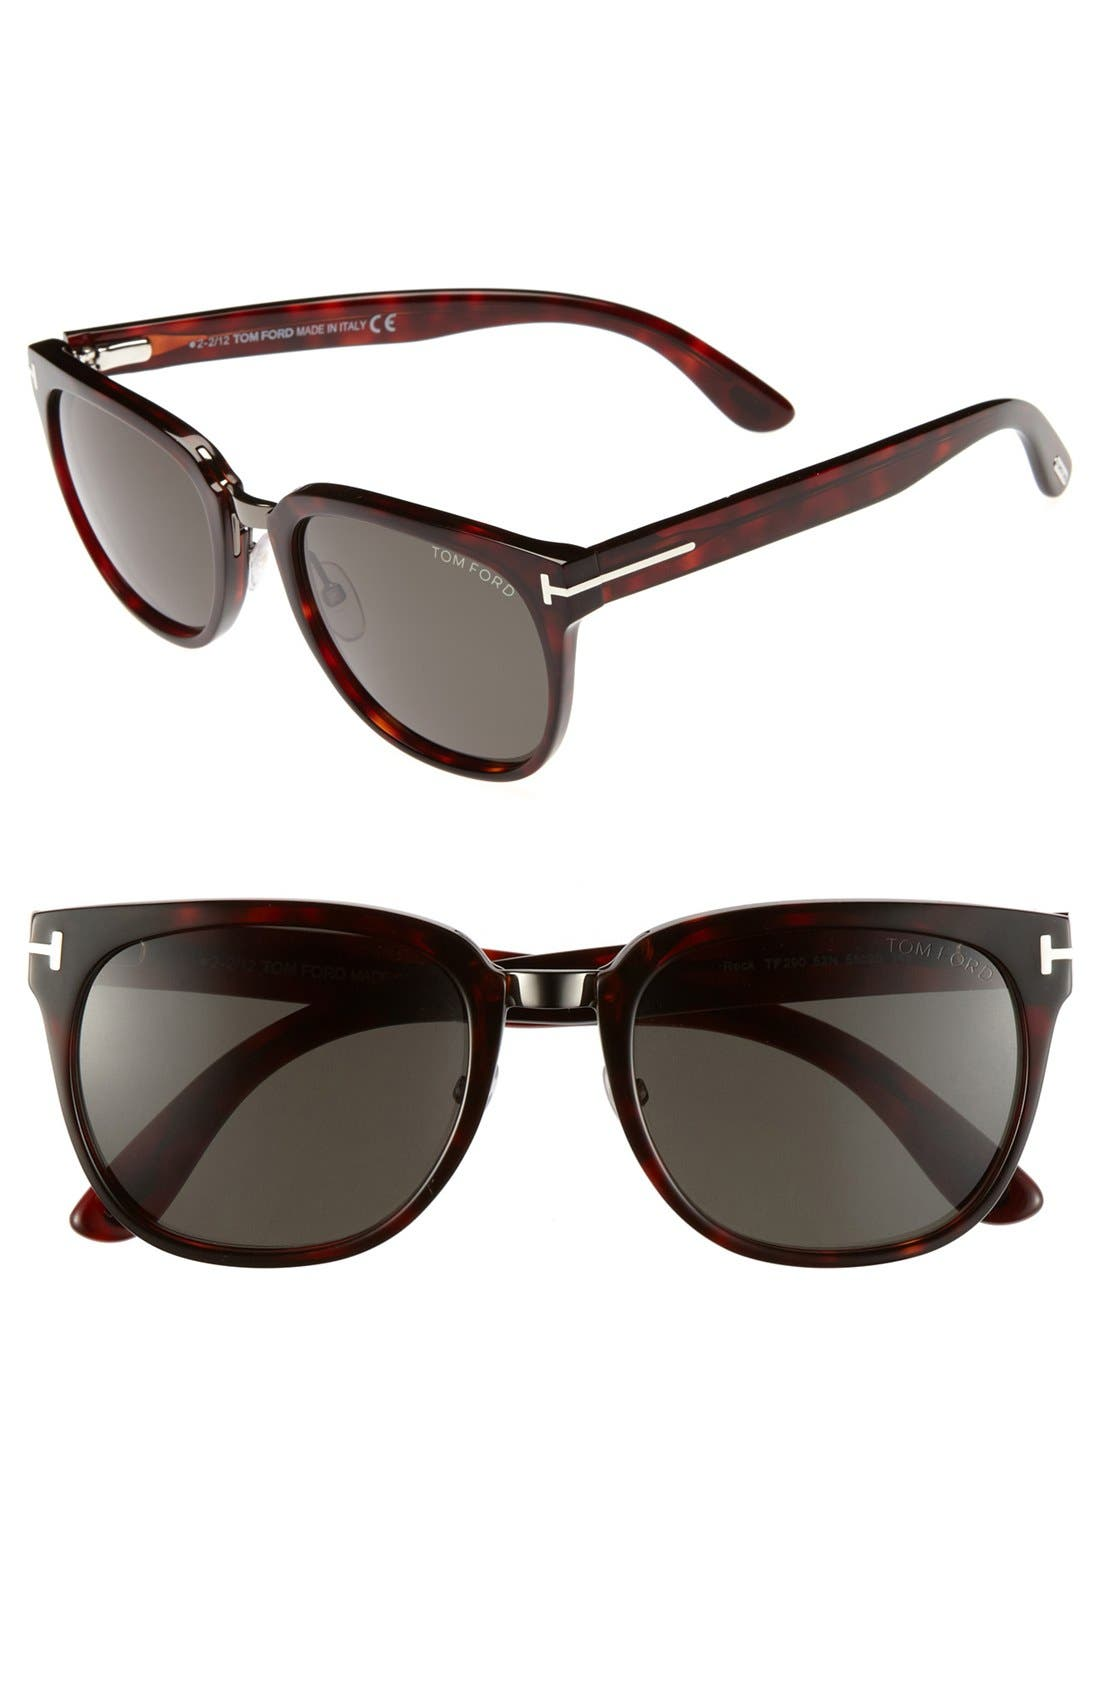 Main Image - Tom Ford 'Rock' 55mm Sunglasses